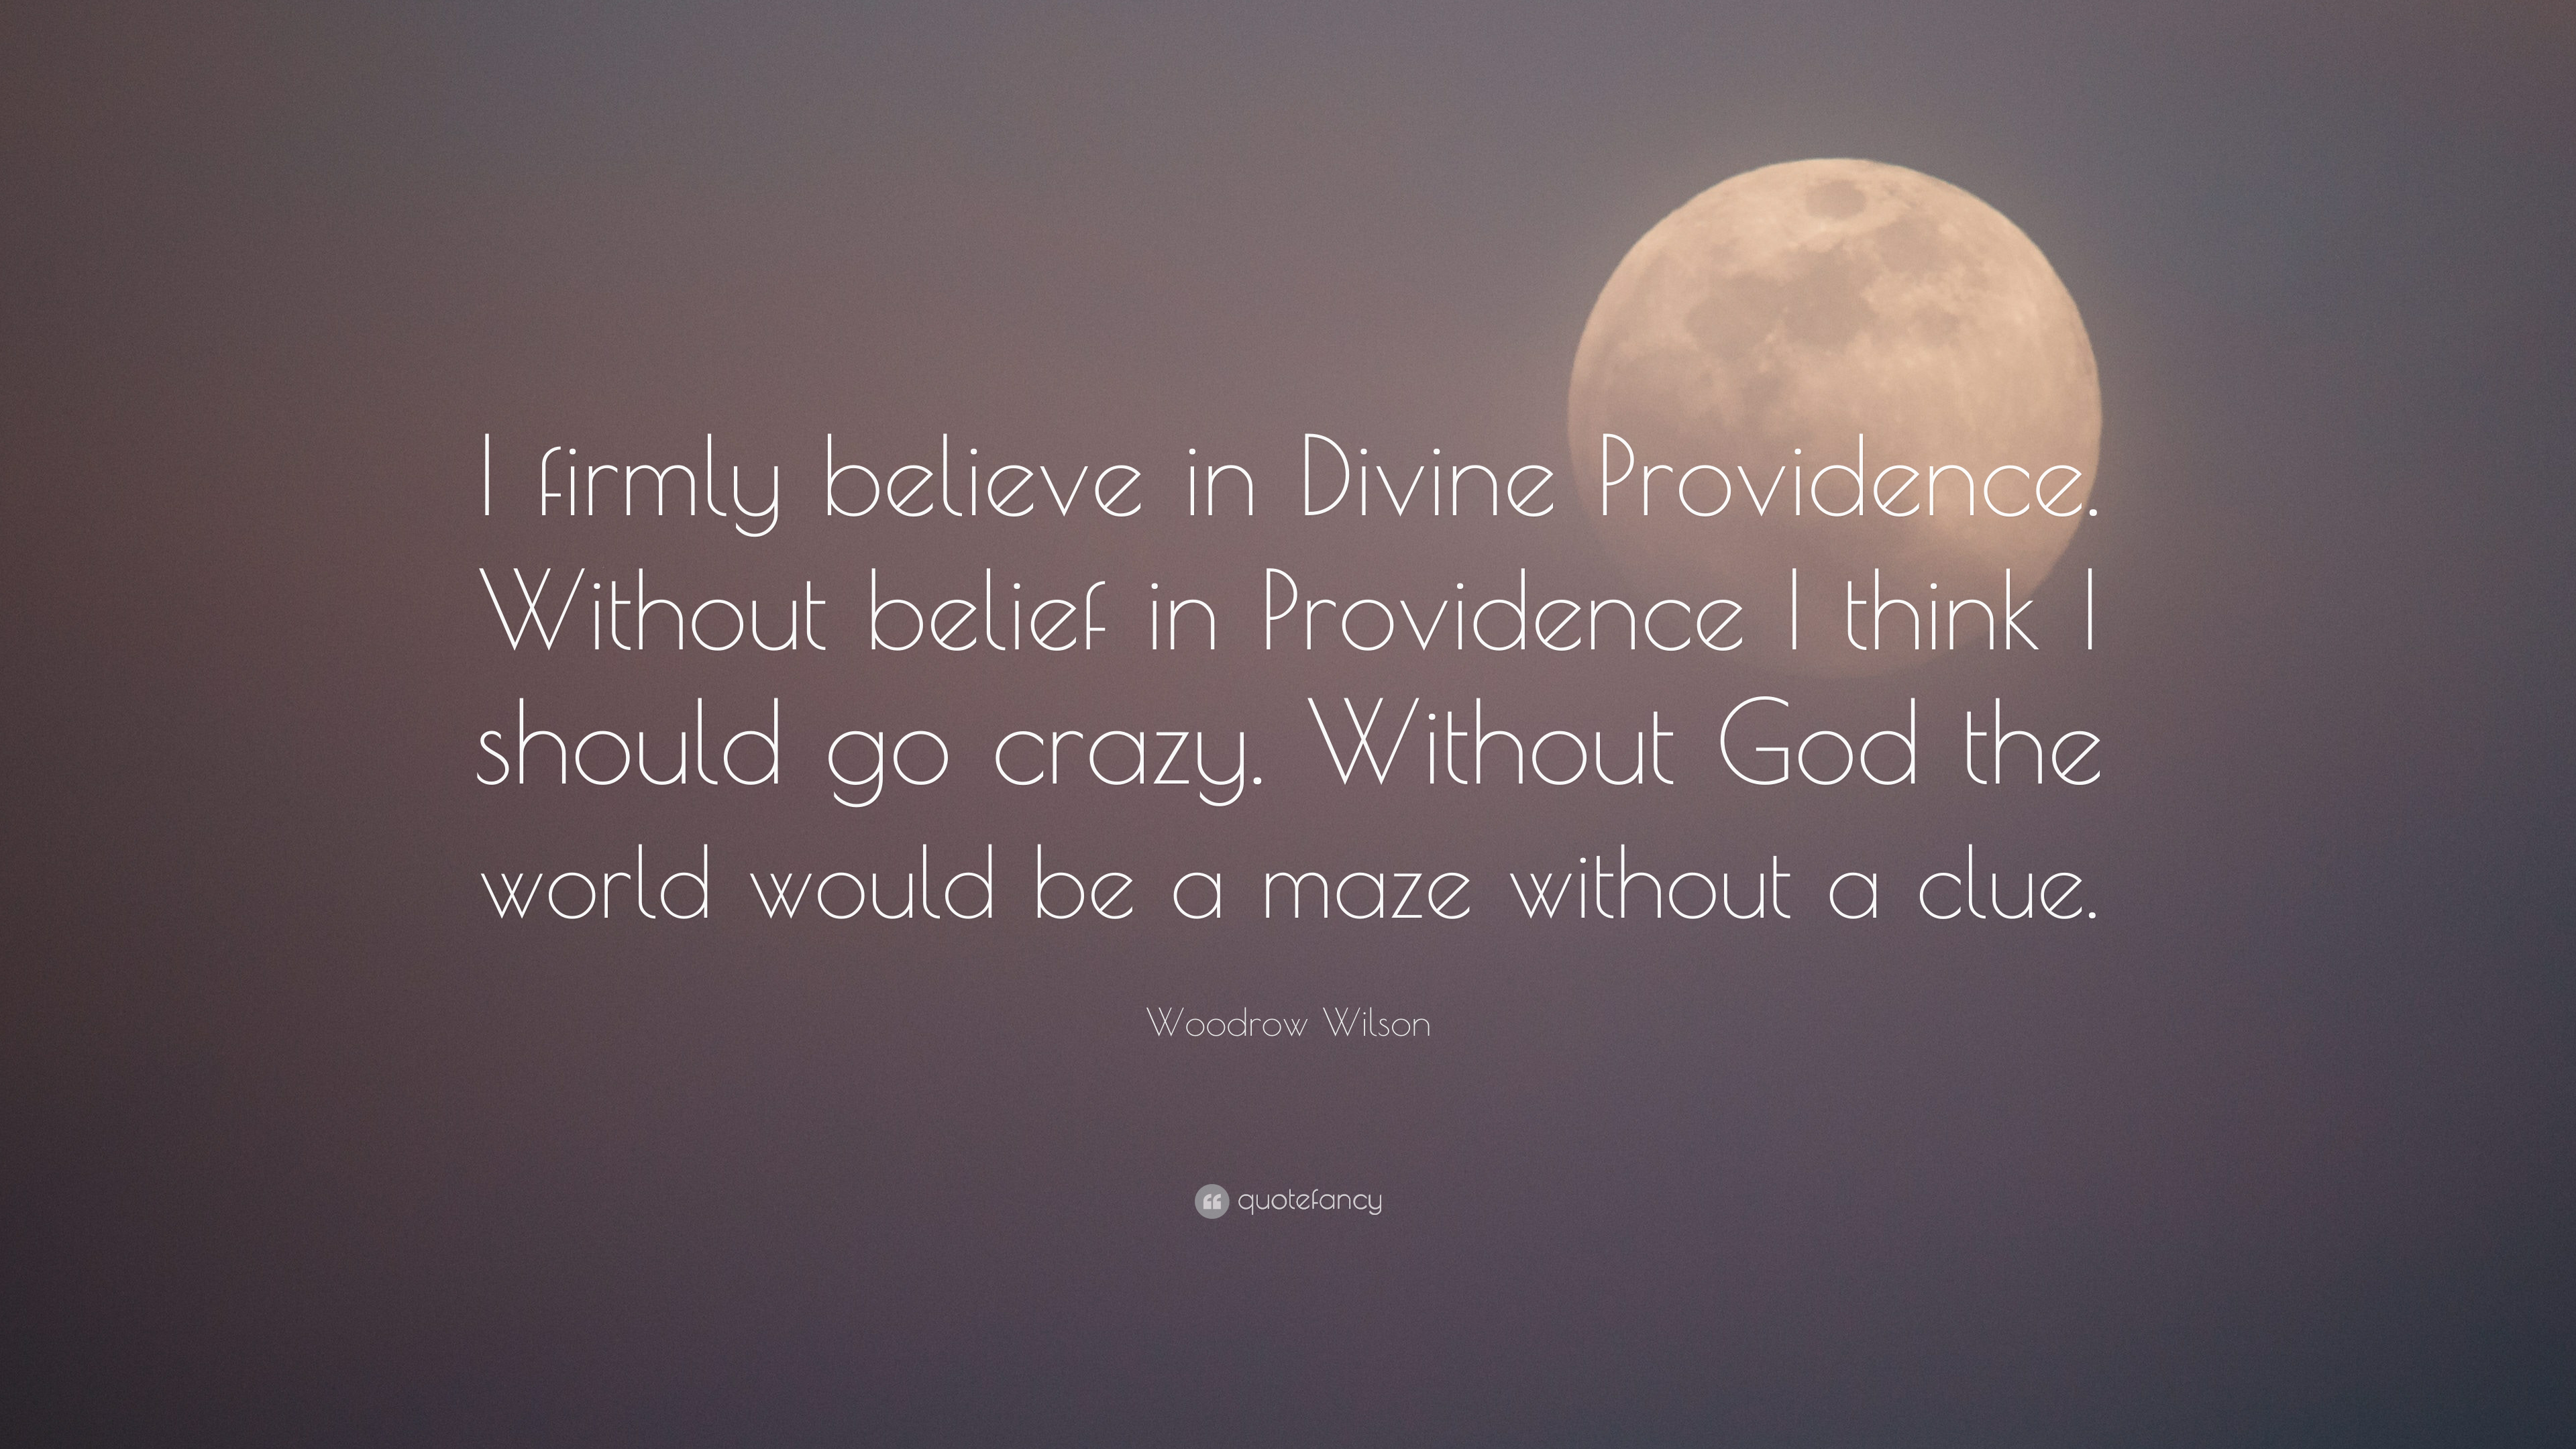 "Woodrow Wilson Quote: ""I firmly believe in Divine Providence. Without  belief in Providence I think I should go crazy. Without God the world  wou..."" (7 wallpapers) - Quotefancy"